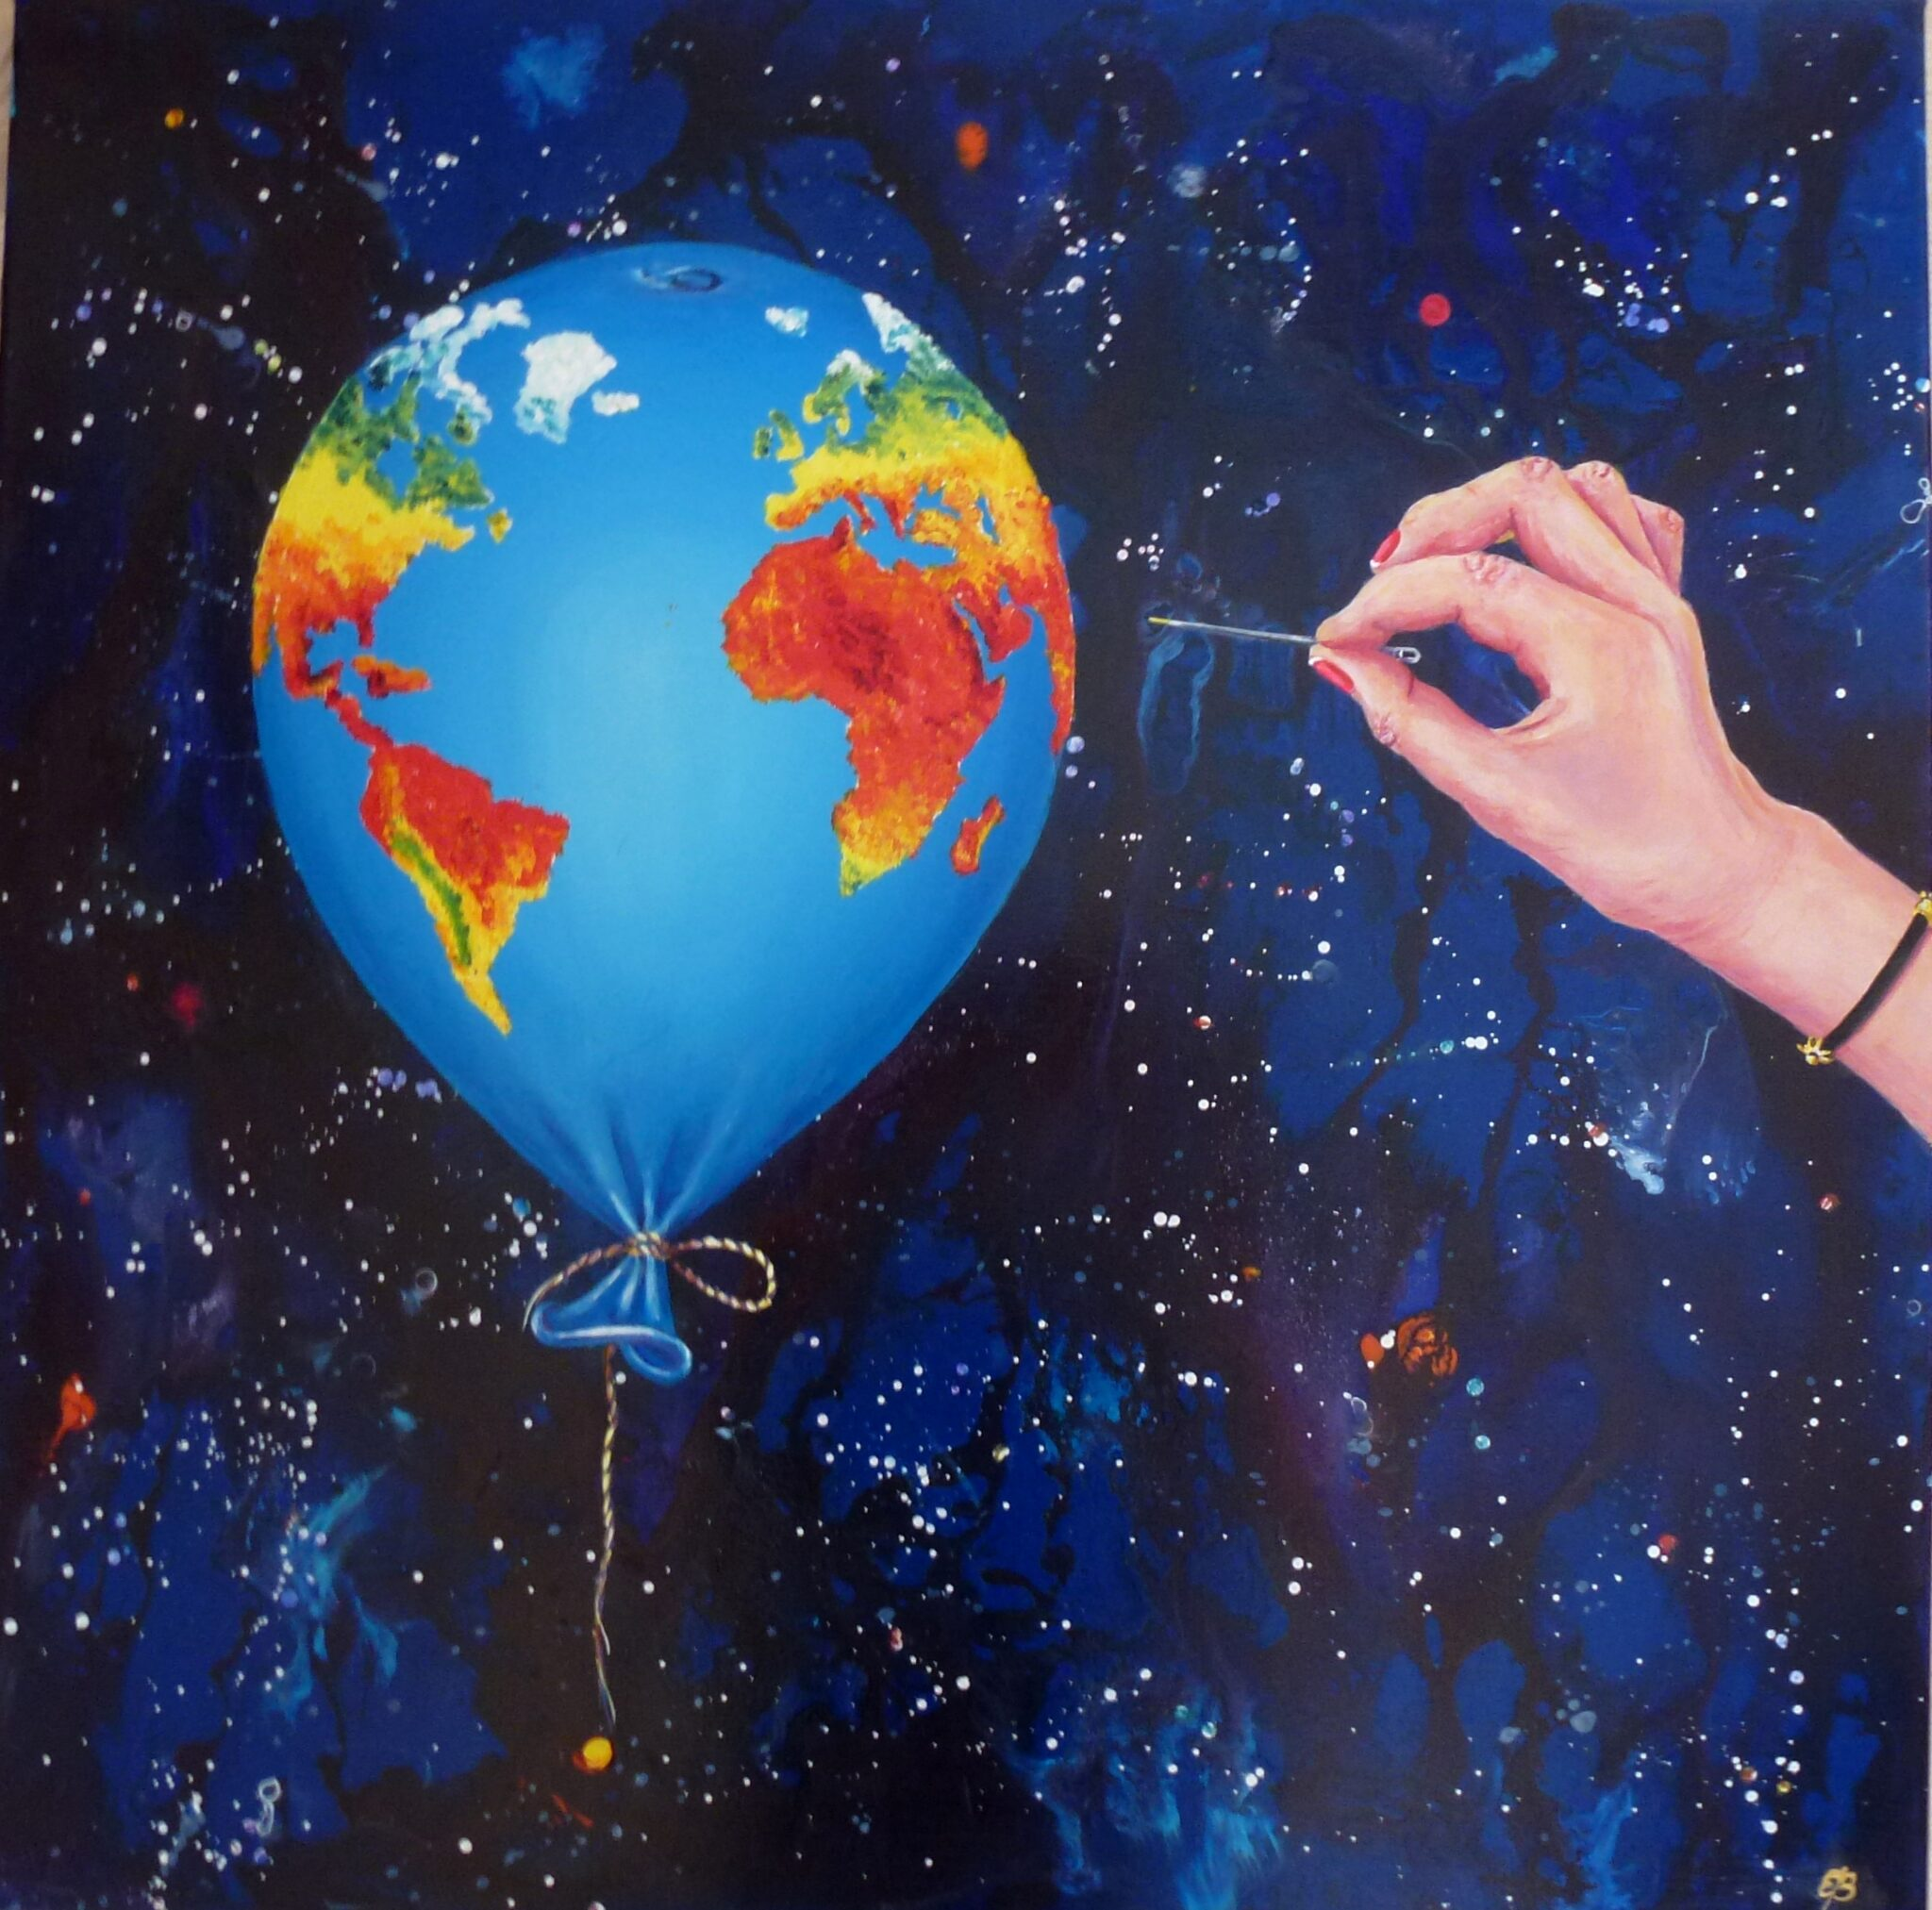 Balloon depicted as our planet Earth